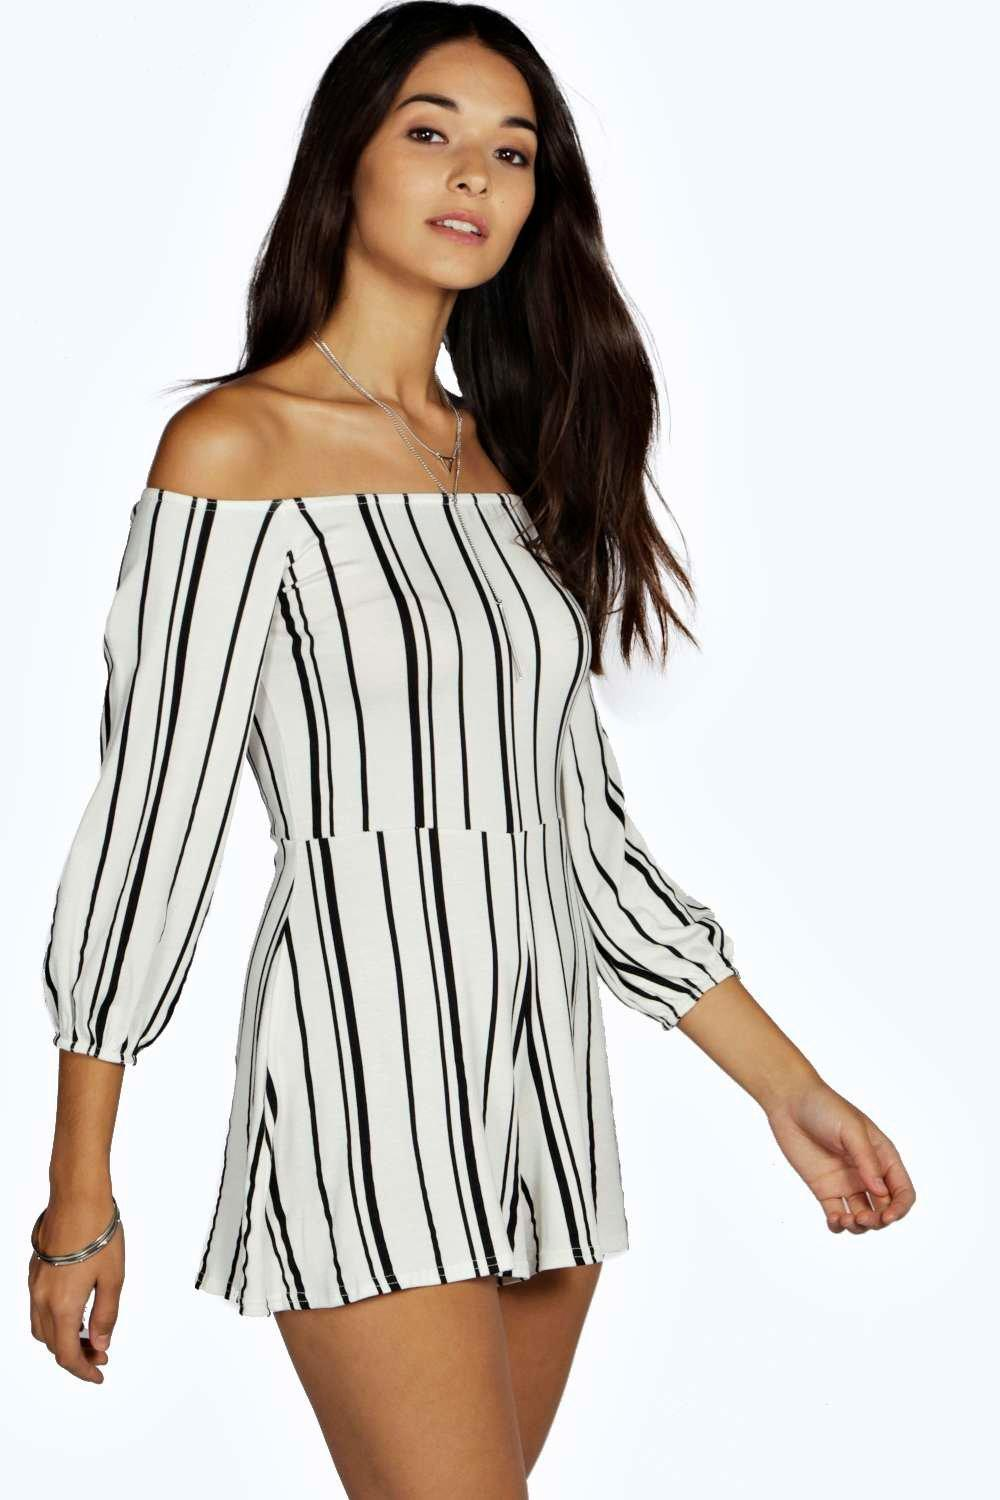 b8d075de9ec1 Stripe Off The Shoulder Playsuit. Hover to zoom